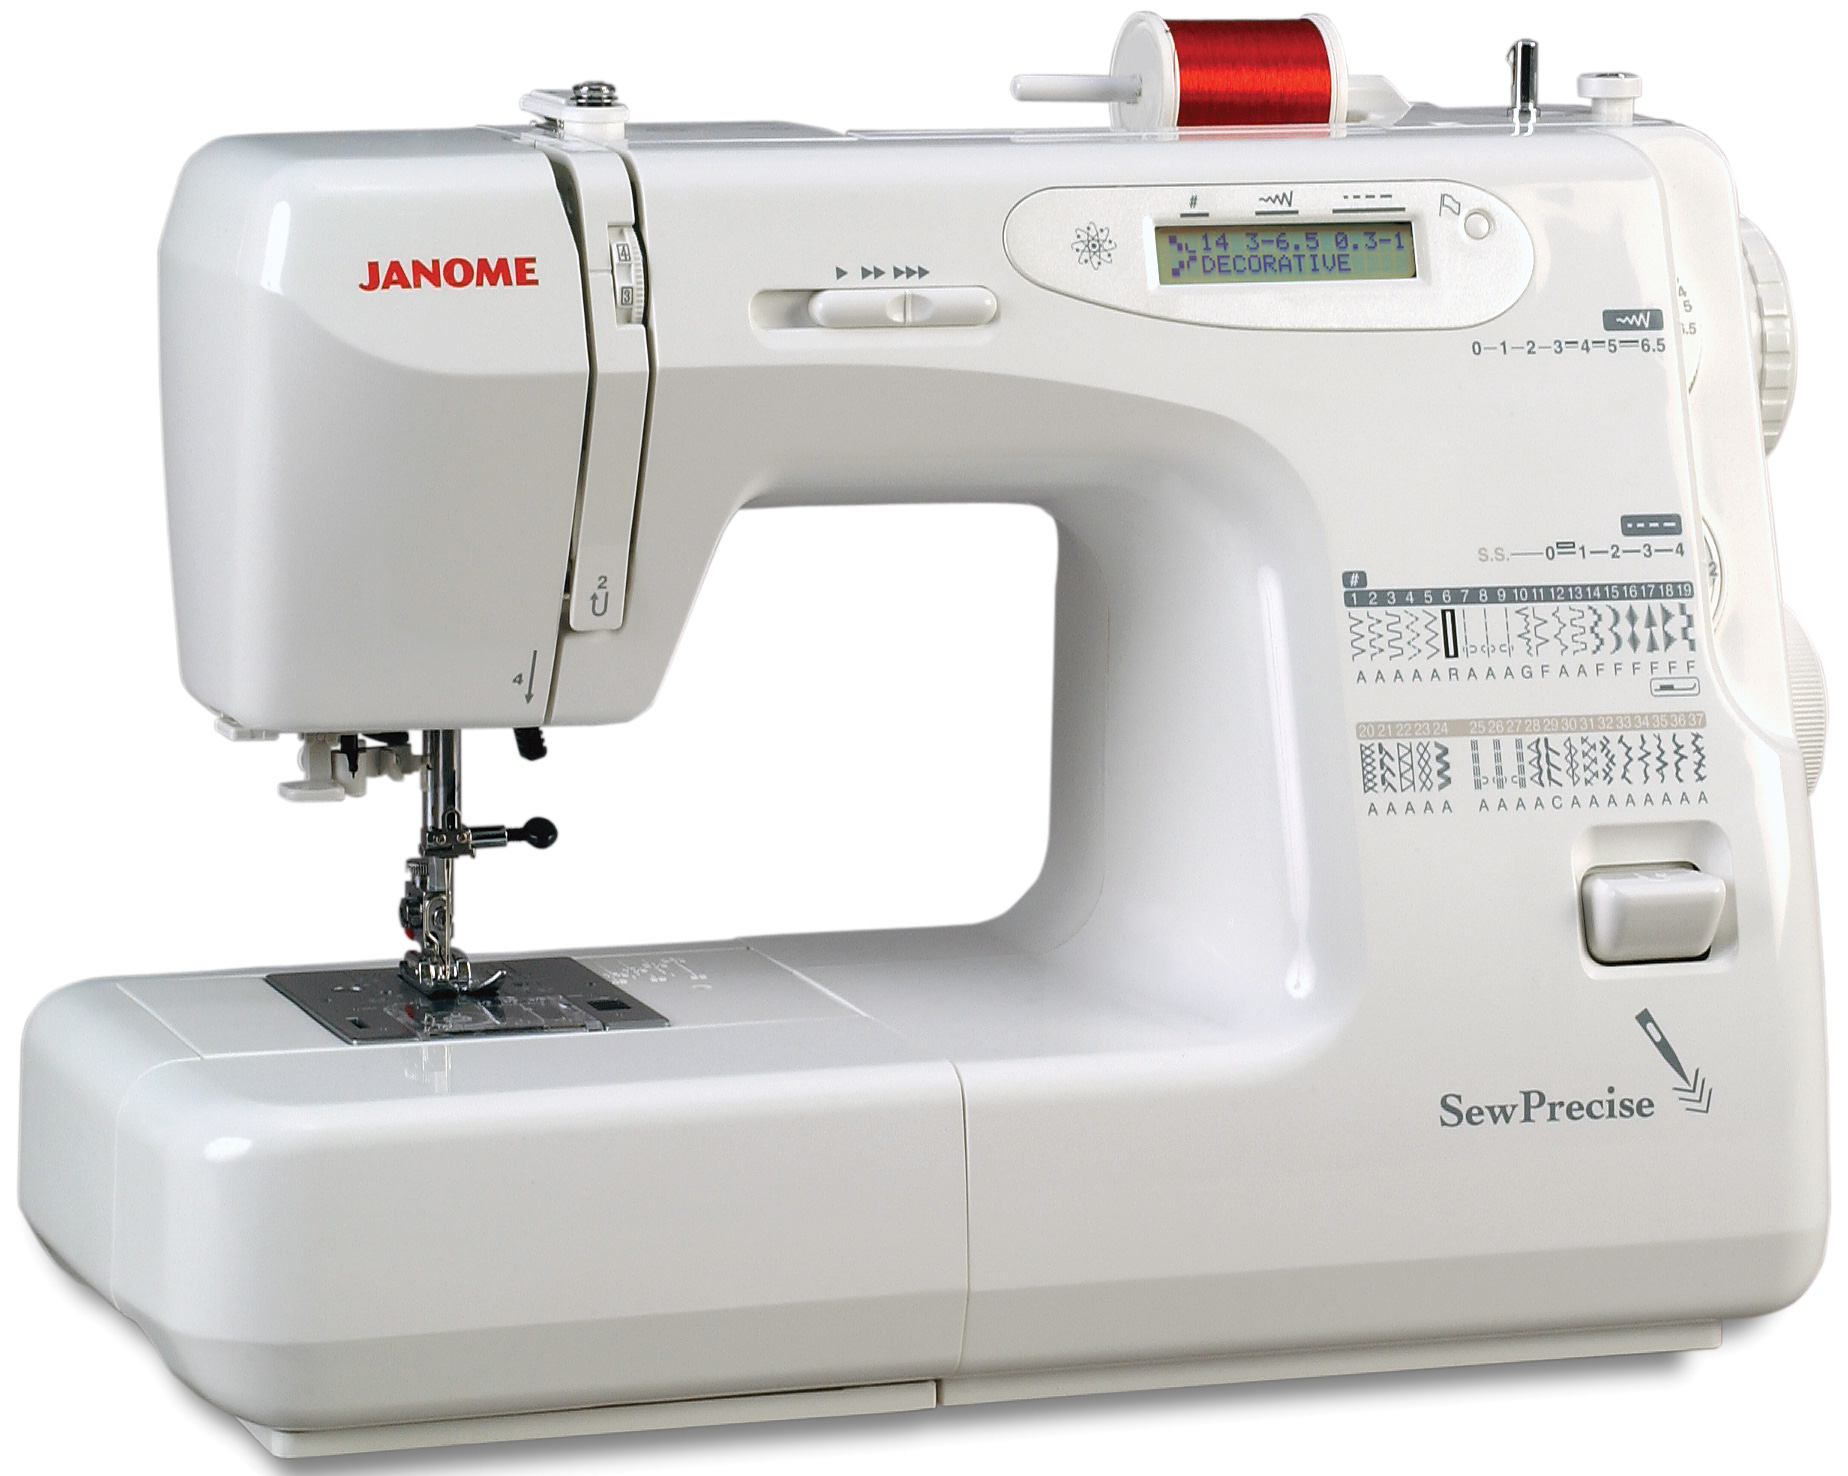 Janome Sew Precise Sewing Machine